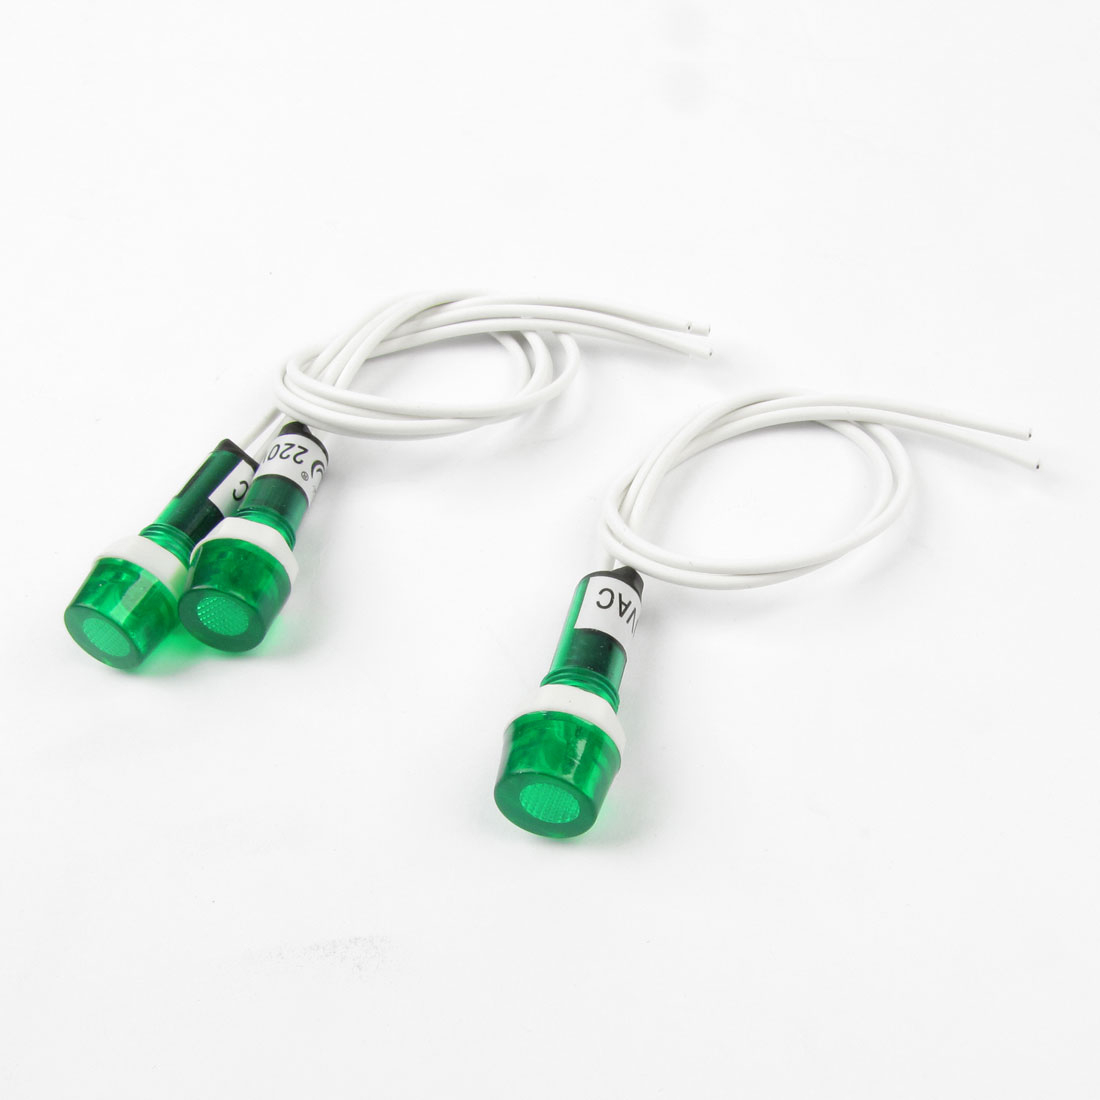 AC-220V-Green-Water-Heater-Indicator-Light-w-8-1-Length-Cable-3Pcs